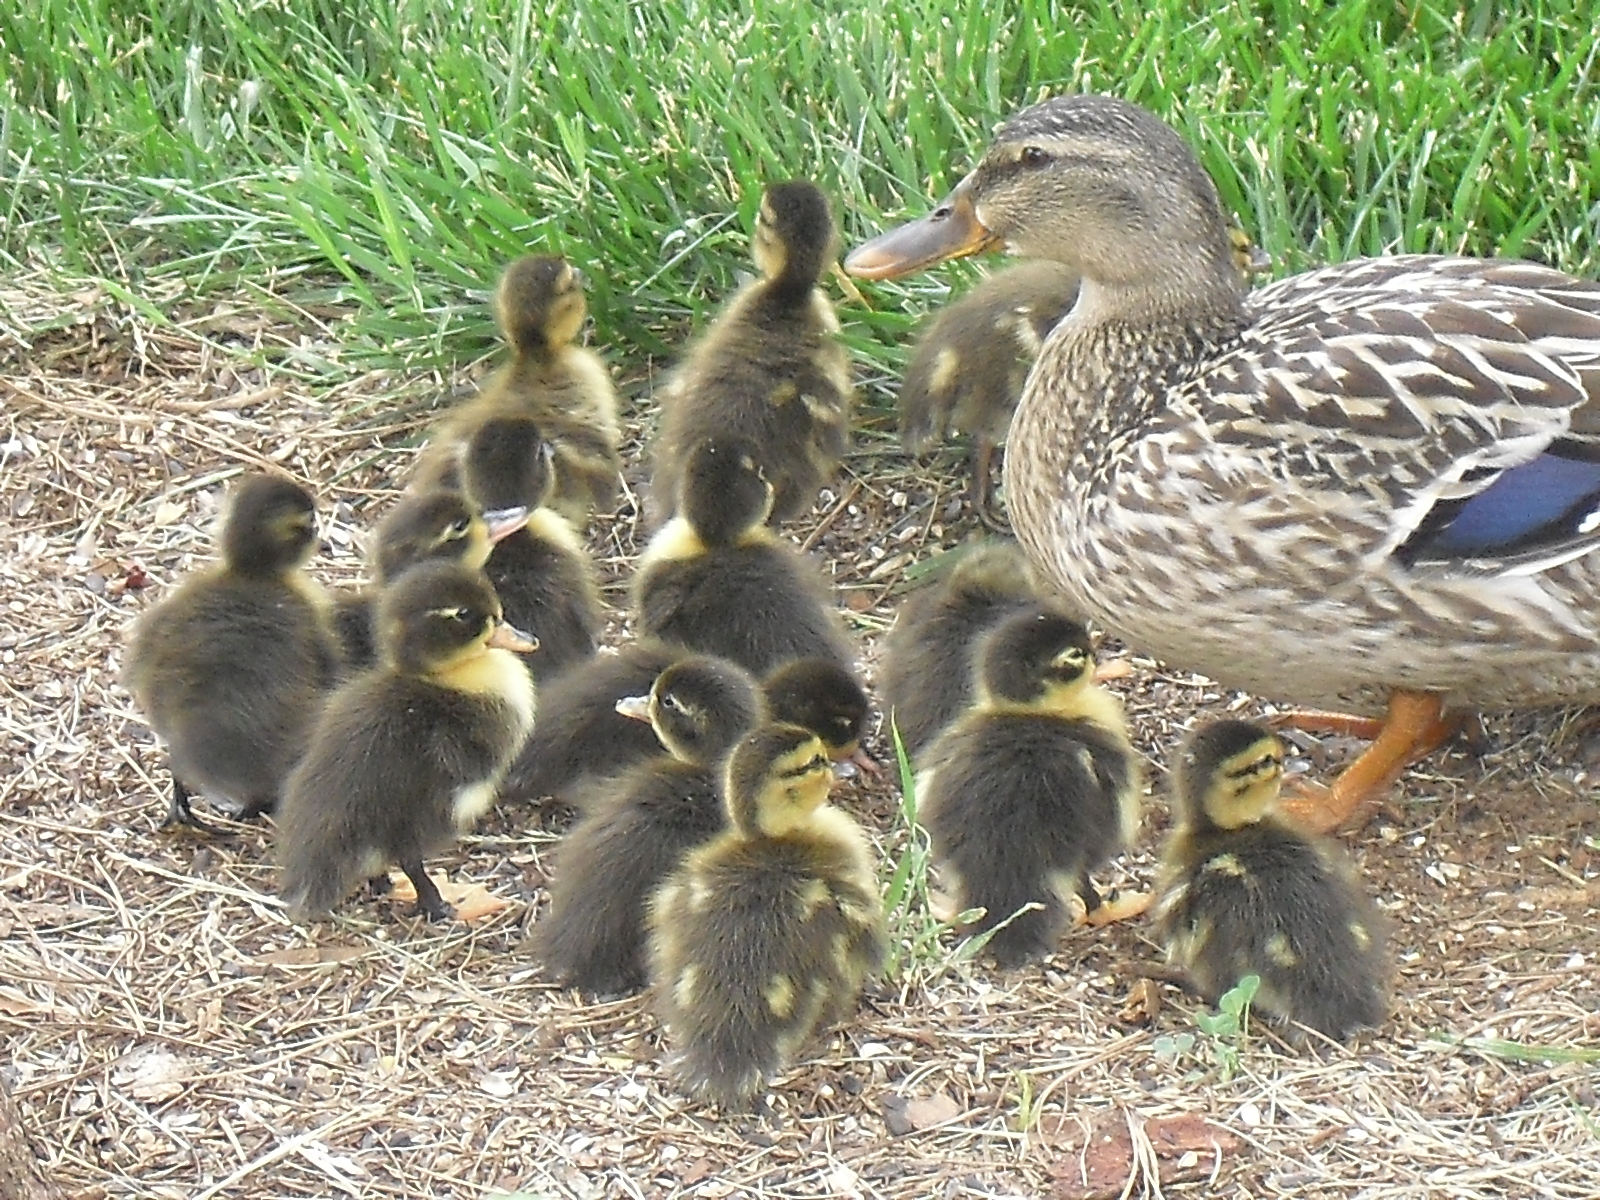 yellow baby ducks walking - photo #46